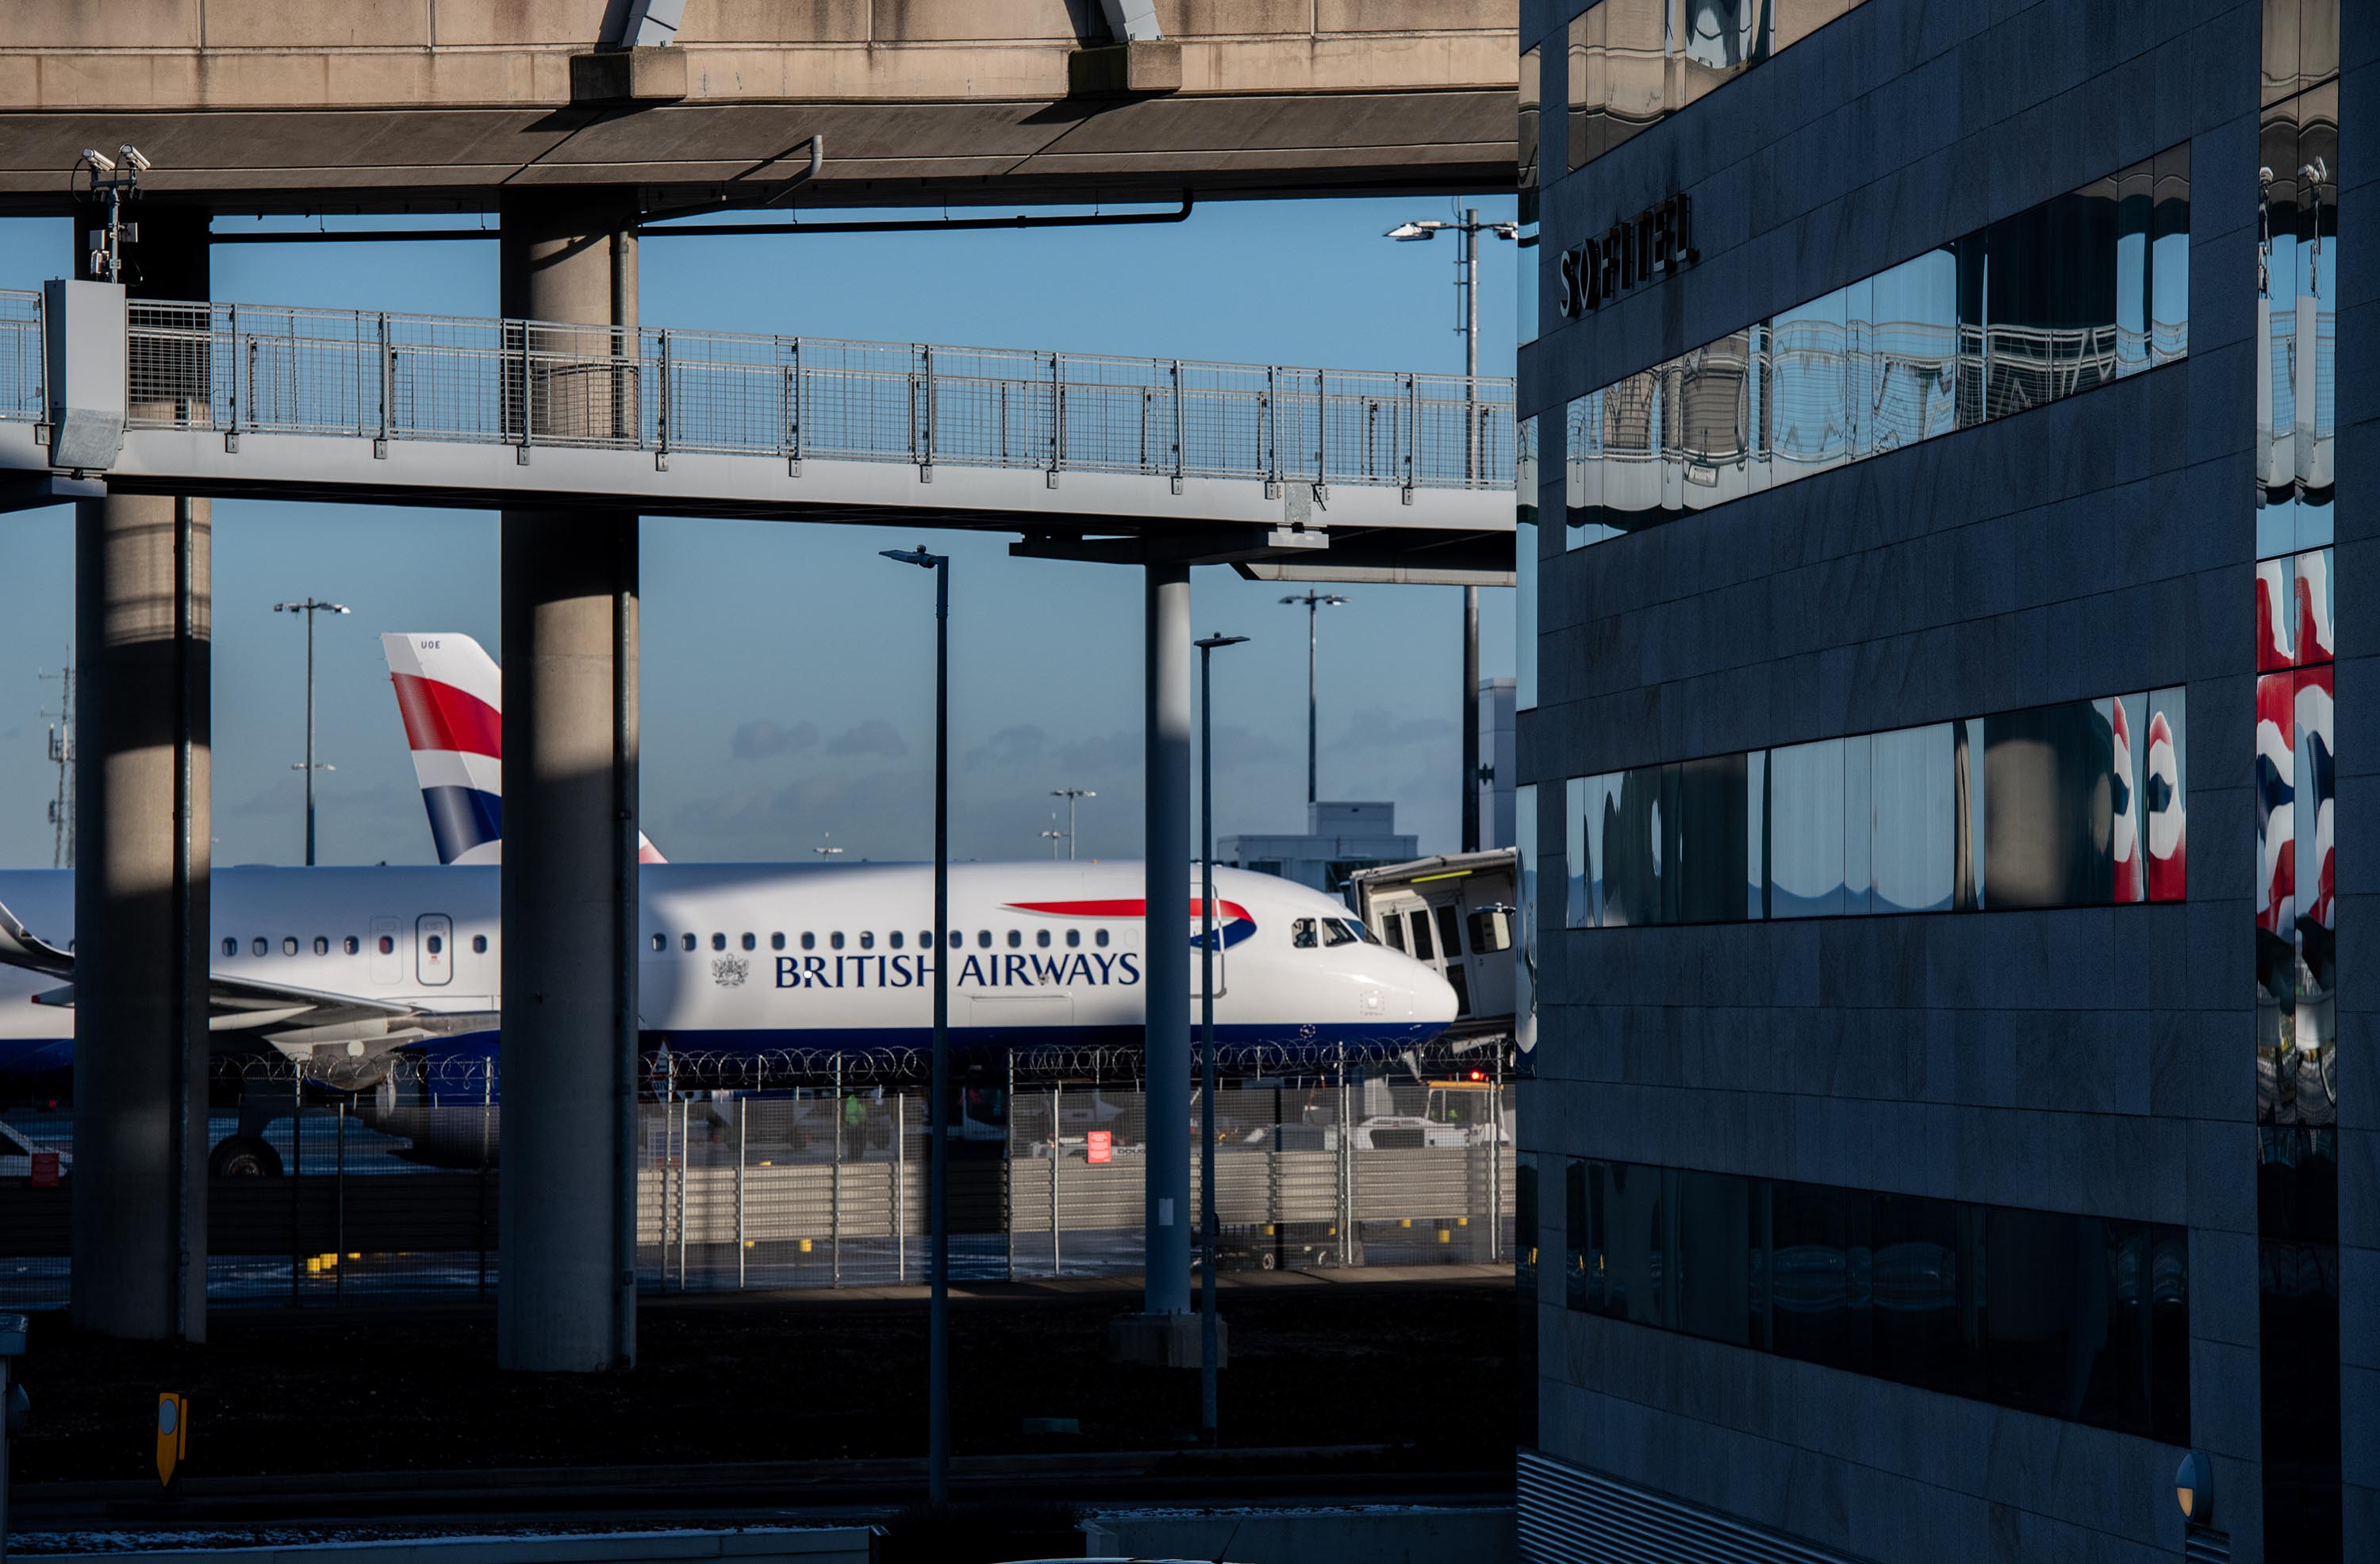 British Airways airplanes are seen behind a Sofitel hotel at Heathrow Airport on January 25, in London, England.